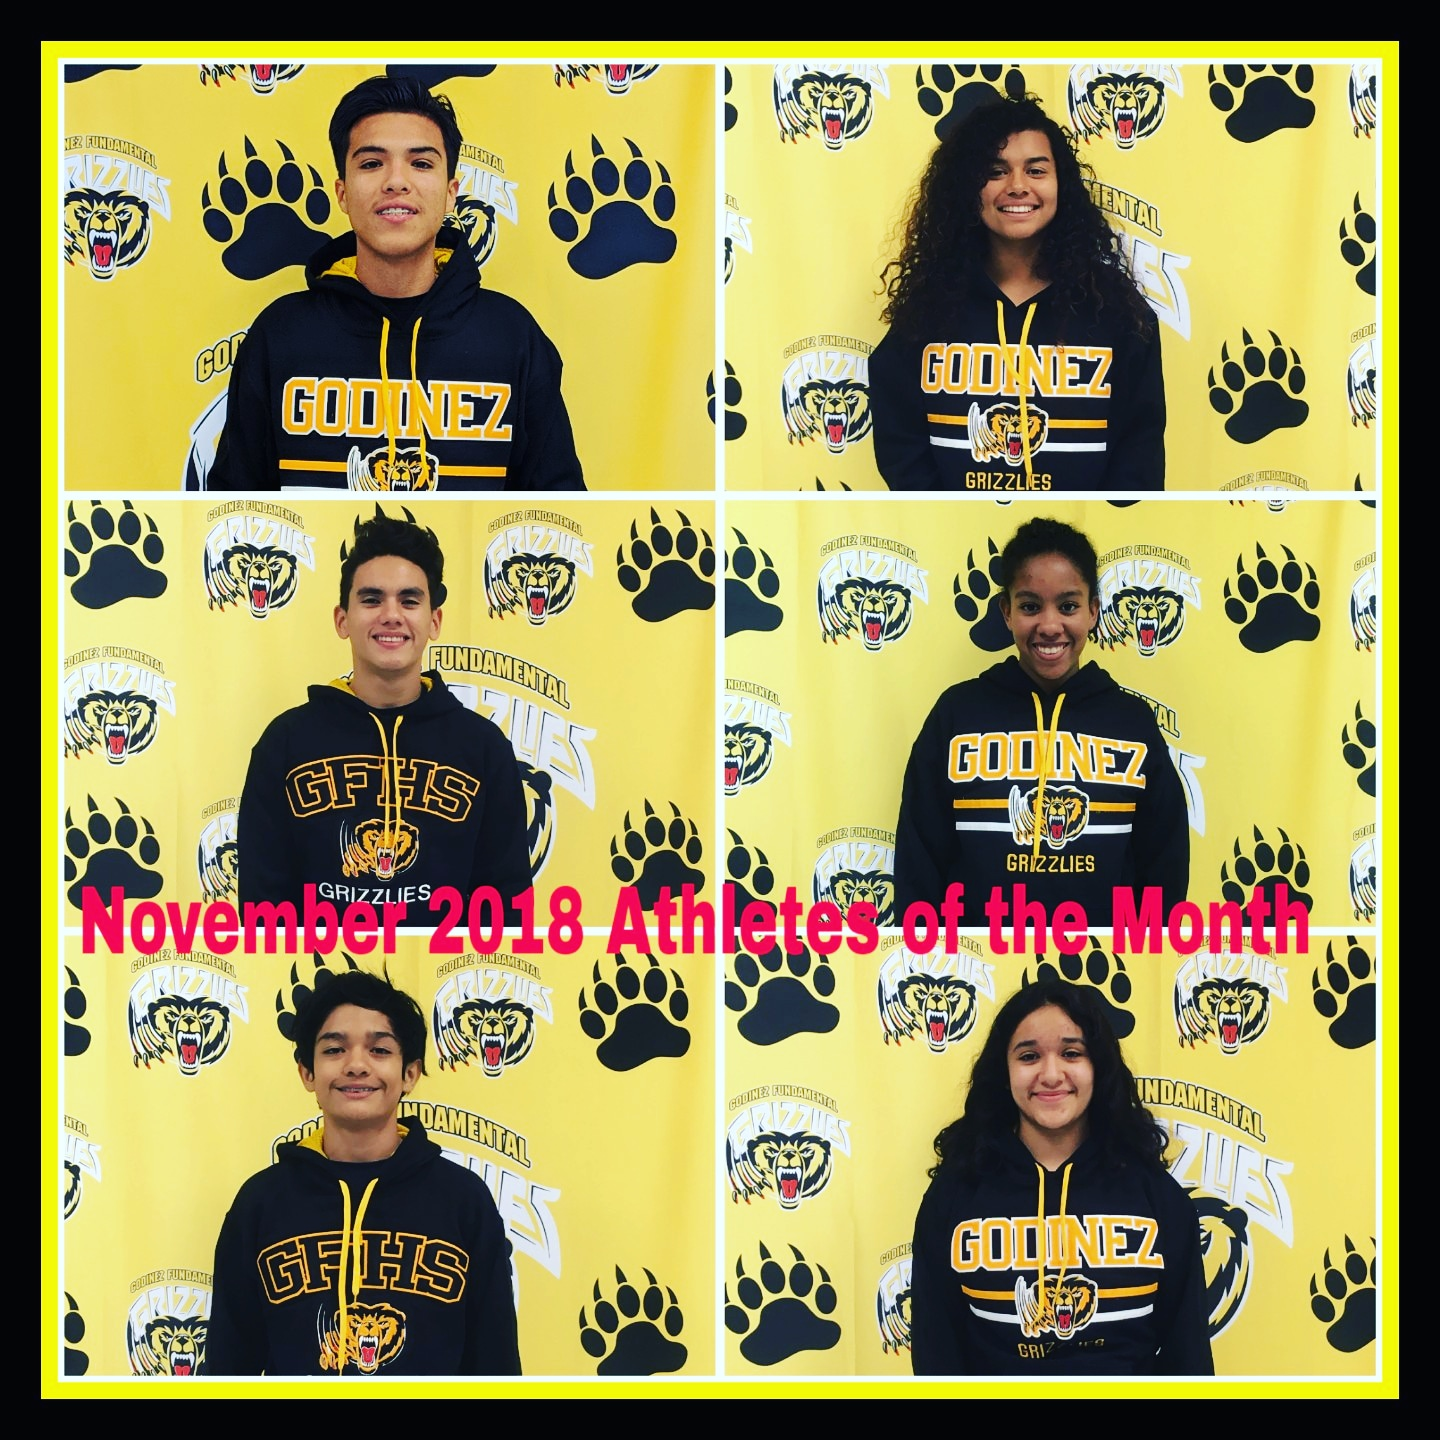 November 2018 Athletes of the Month